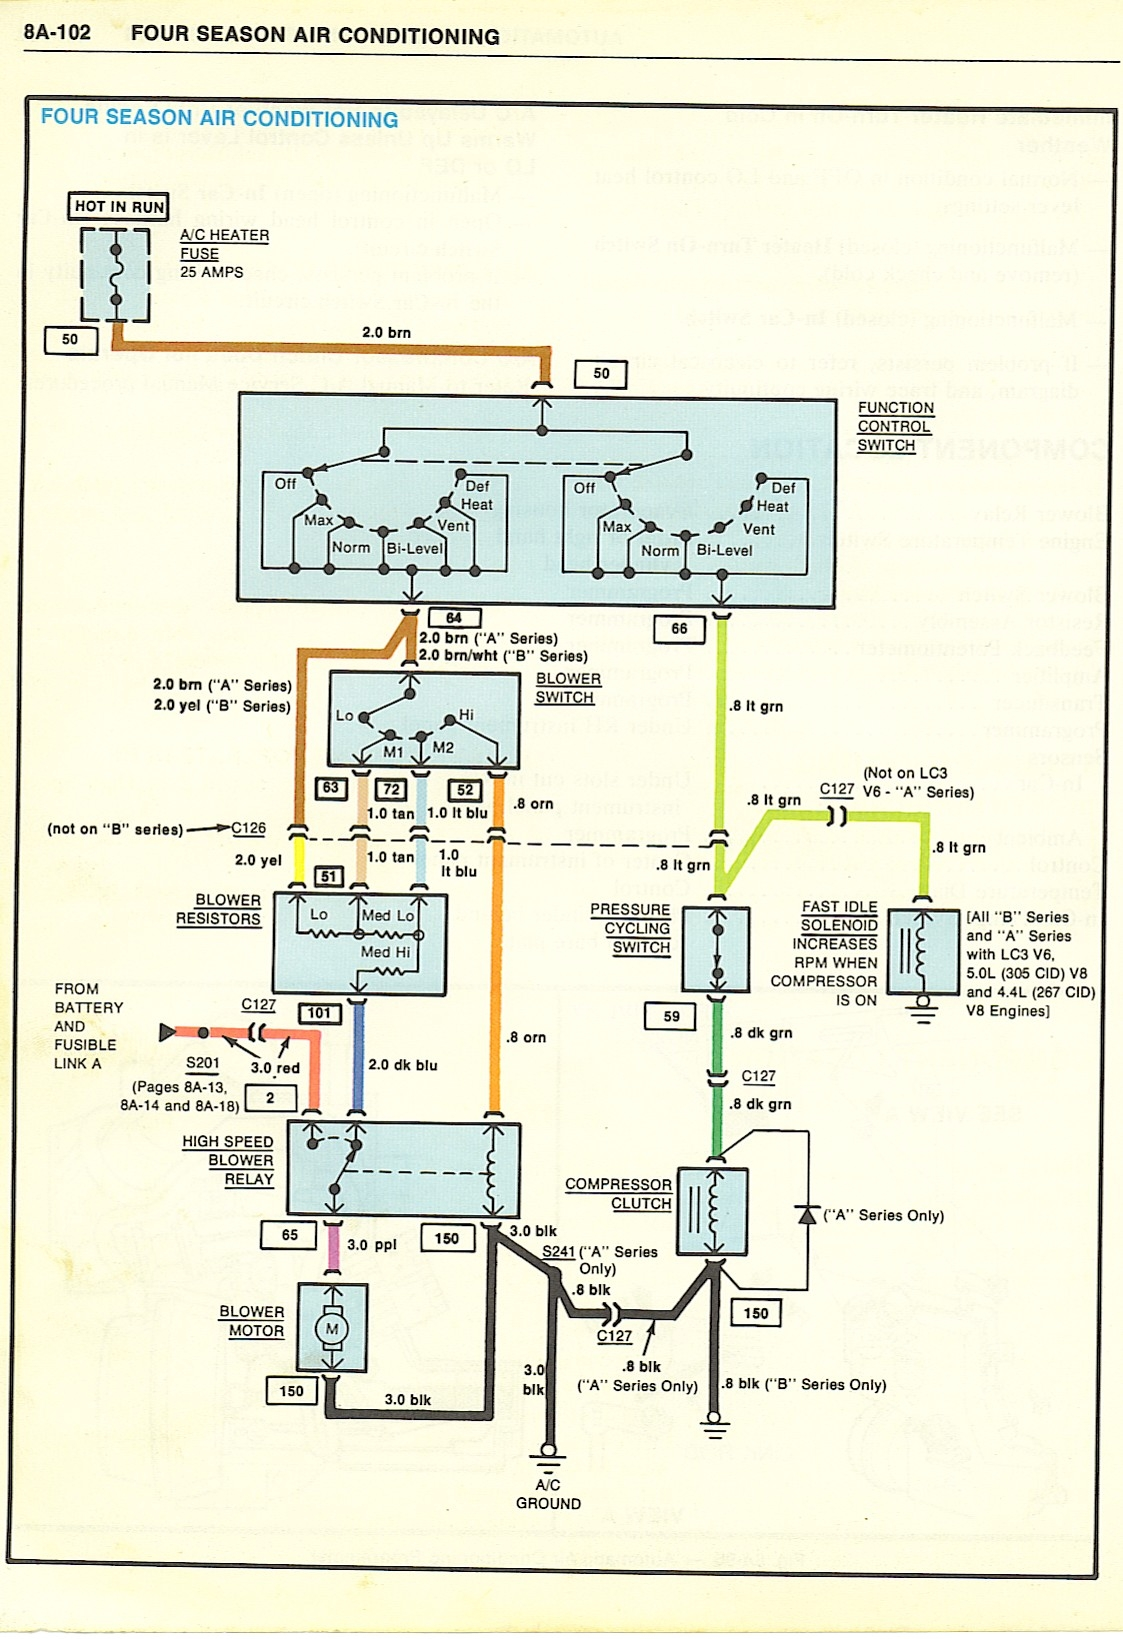 split system air conditioner wiring diagram 2012 ford focus engine ac hvac schematic pdf library1968 camero a c drawing